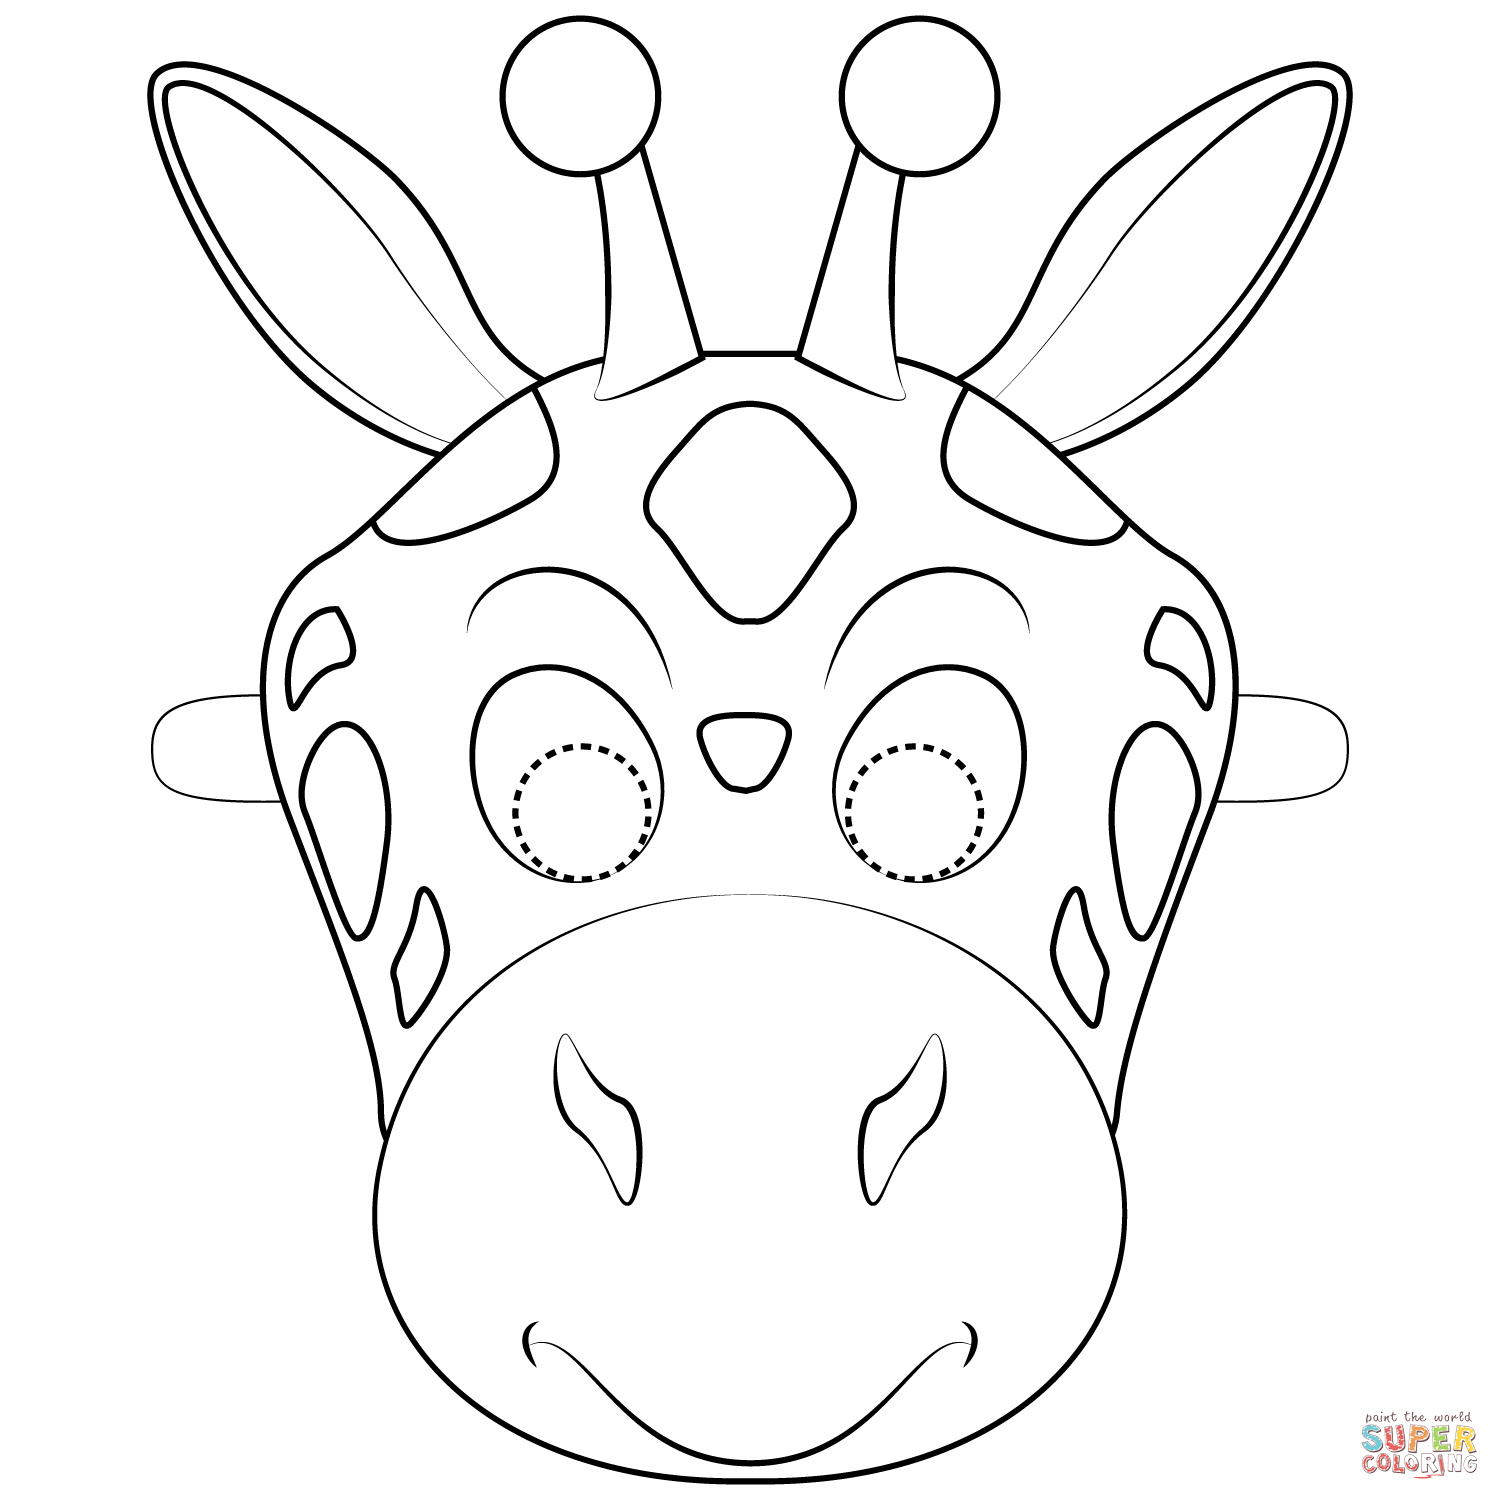 Giraffe Mask Coloring Page | Free Printable Coloring Pages - Giraffe Mask Template Printable Free